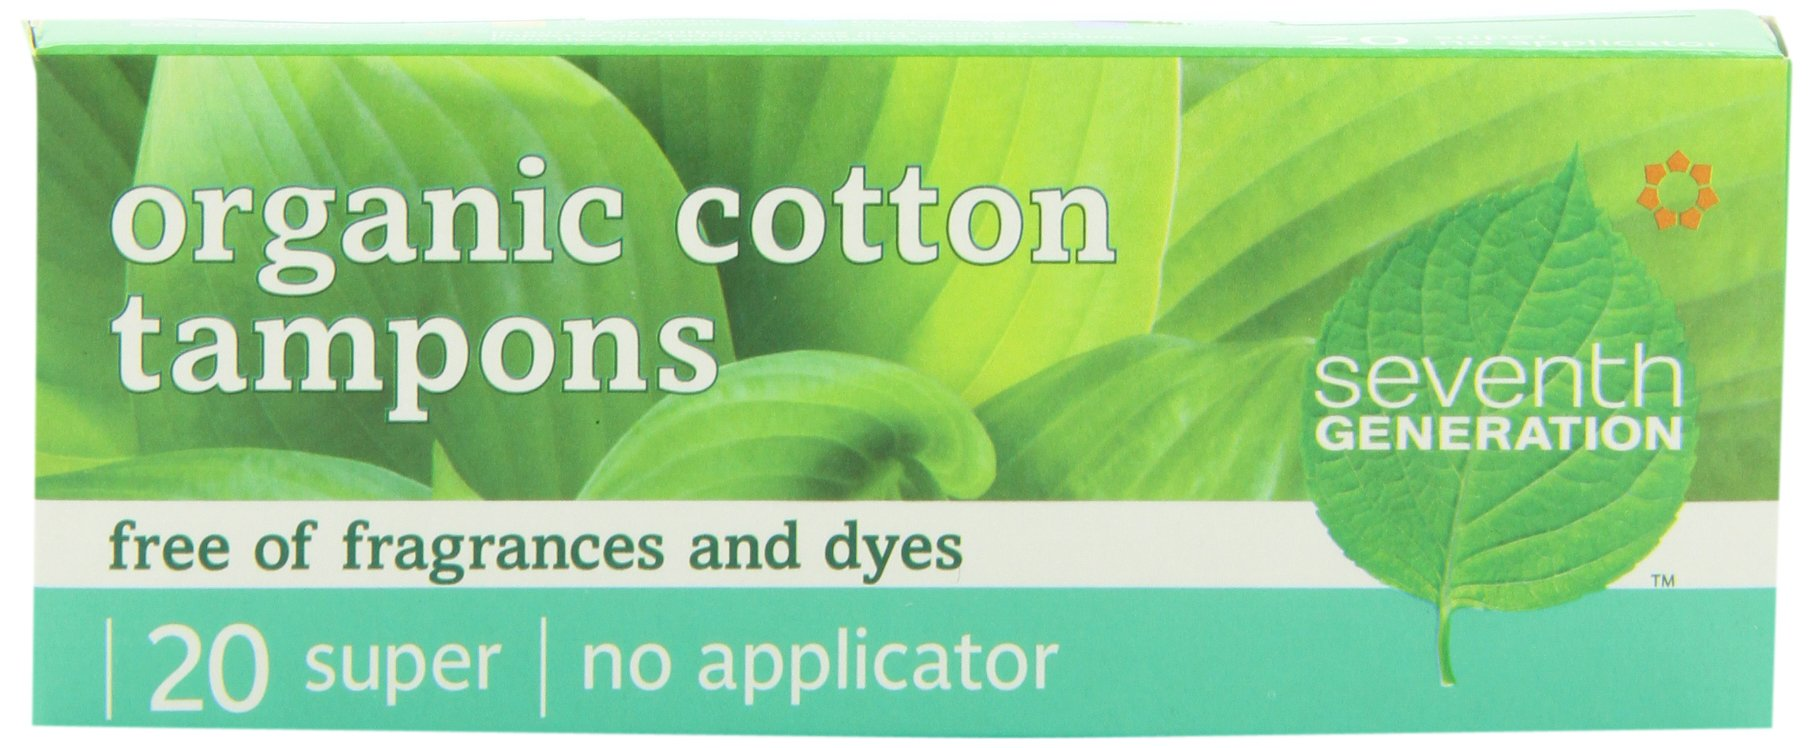 Seventh Generation Chlorine Free Organic Cotton Tampons, Super, non-applicator, 20-count packages (Pack of 12) (240 tampons)